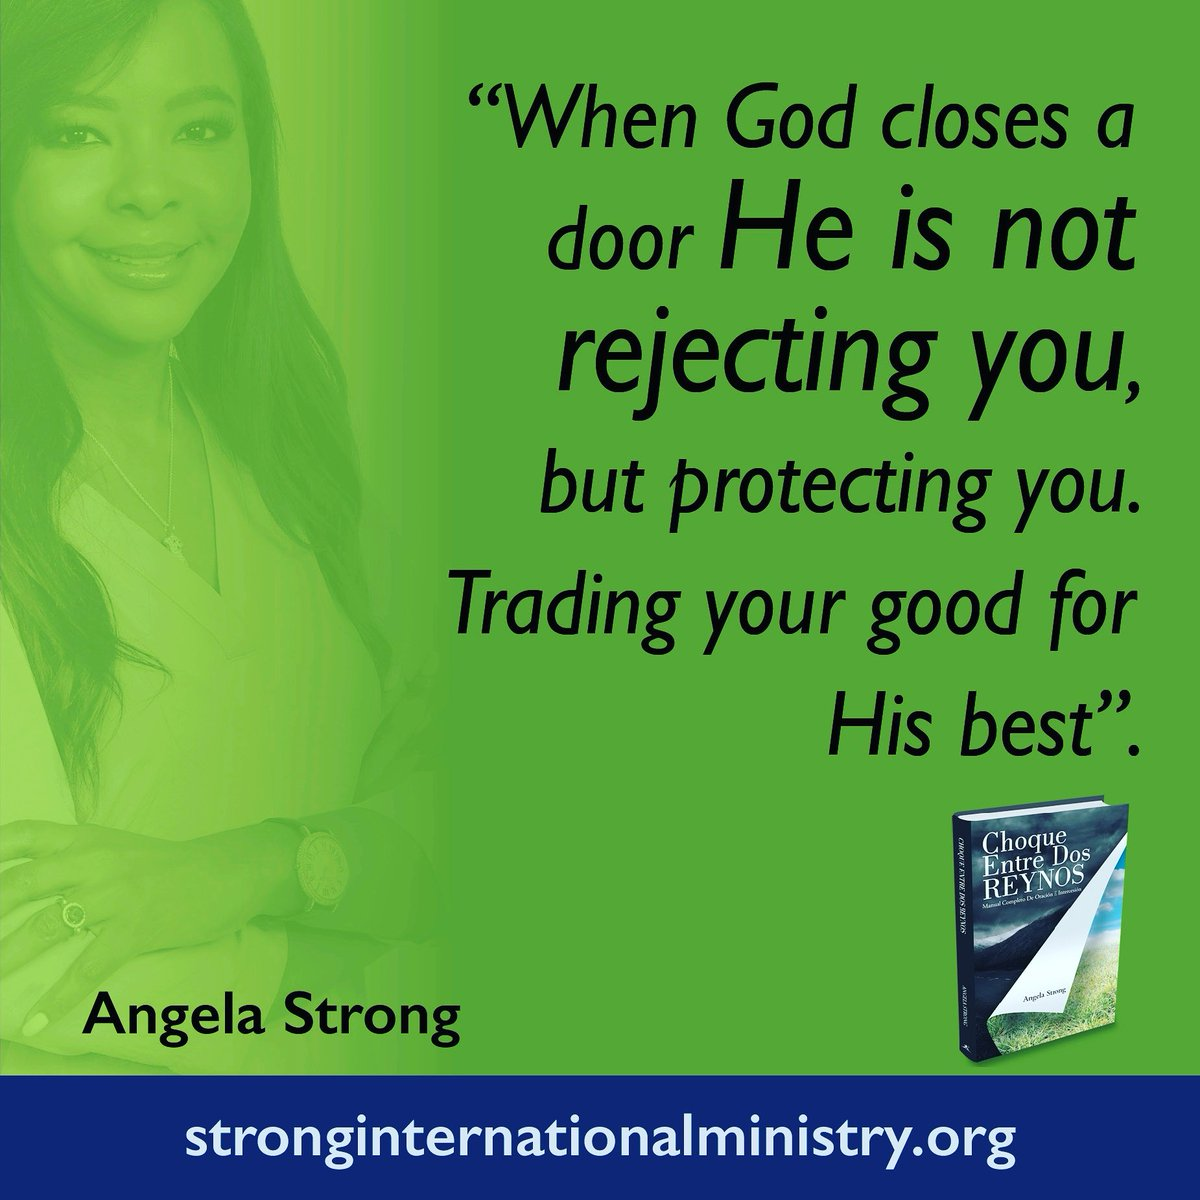 Everything will work together for your good! #Prayer #TrustGod #Book #Jesus #Amazon<br>http://pic.twitter.com/mhQxKVnYim